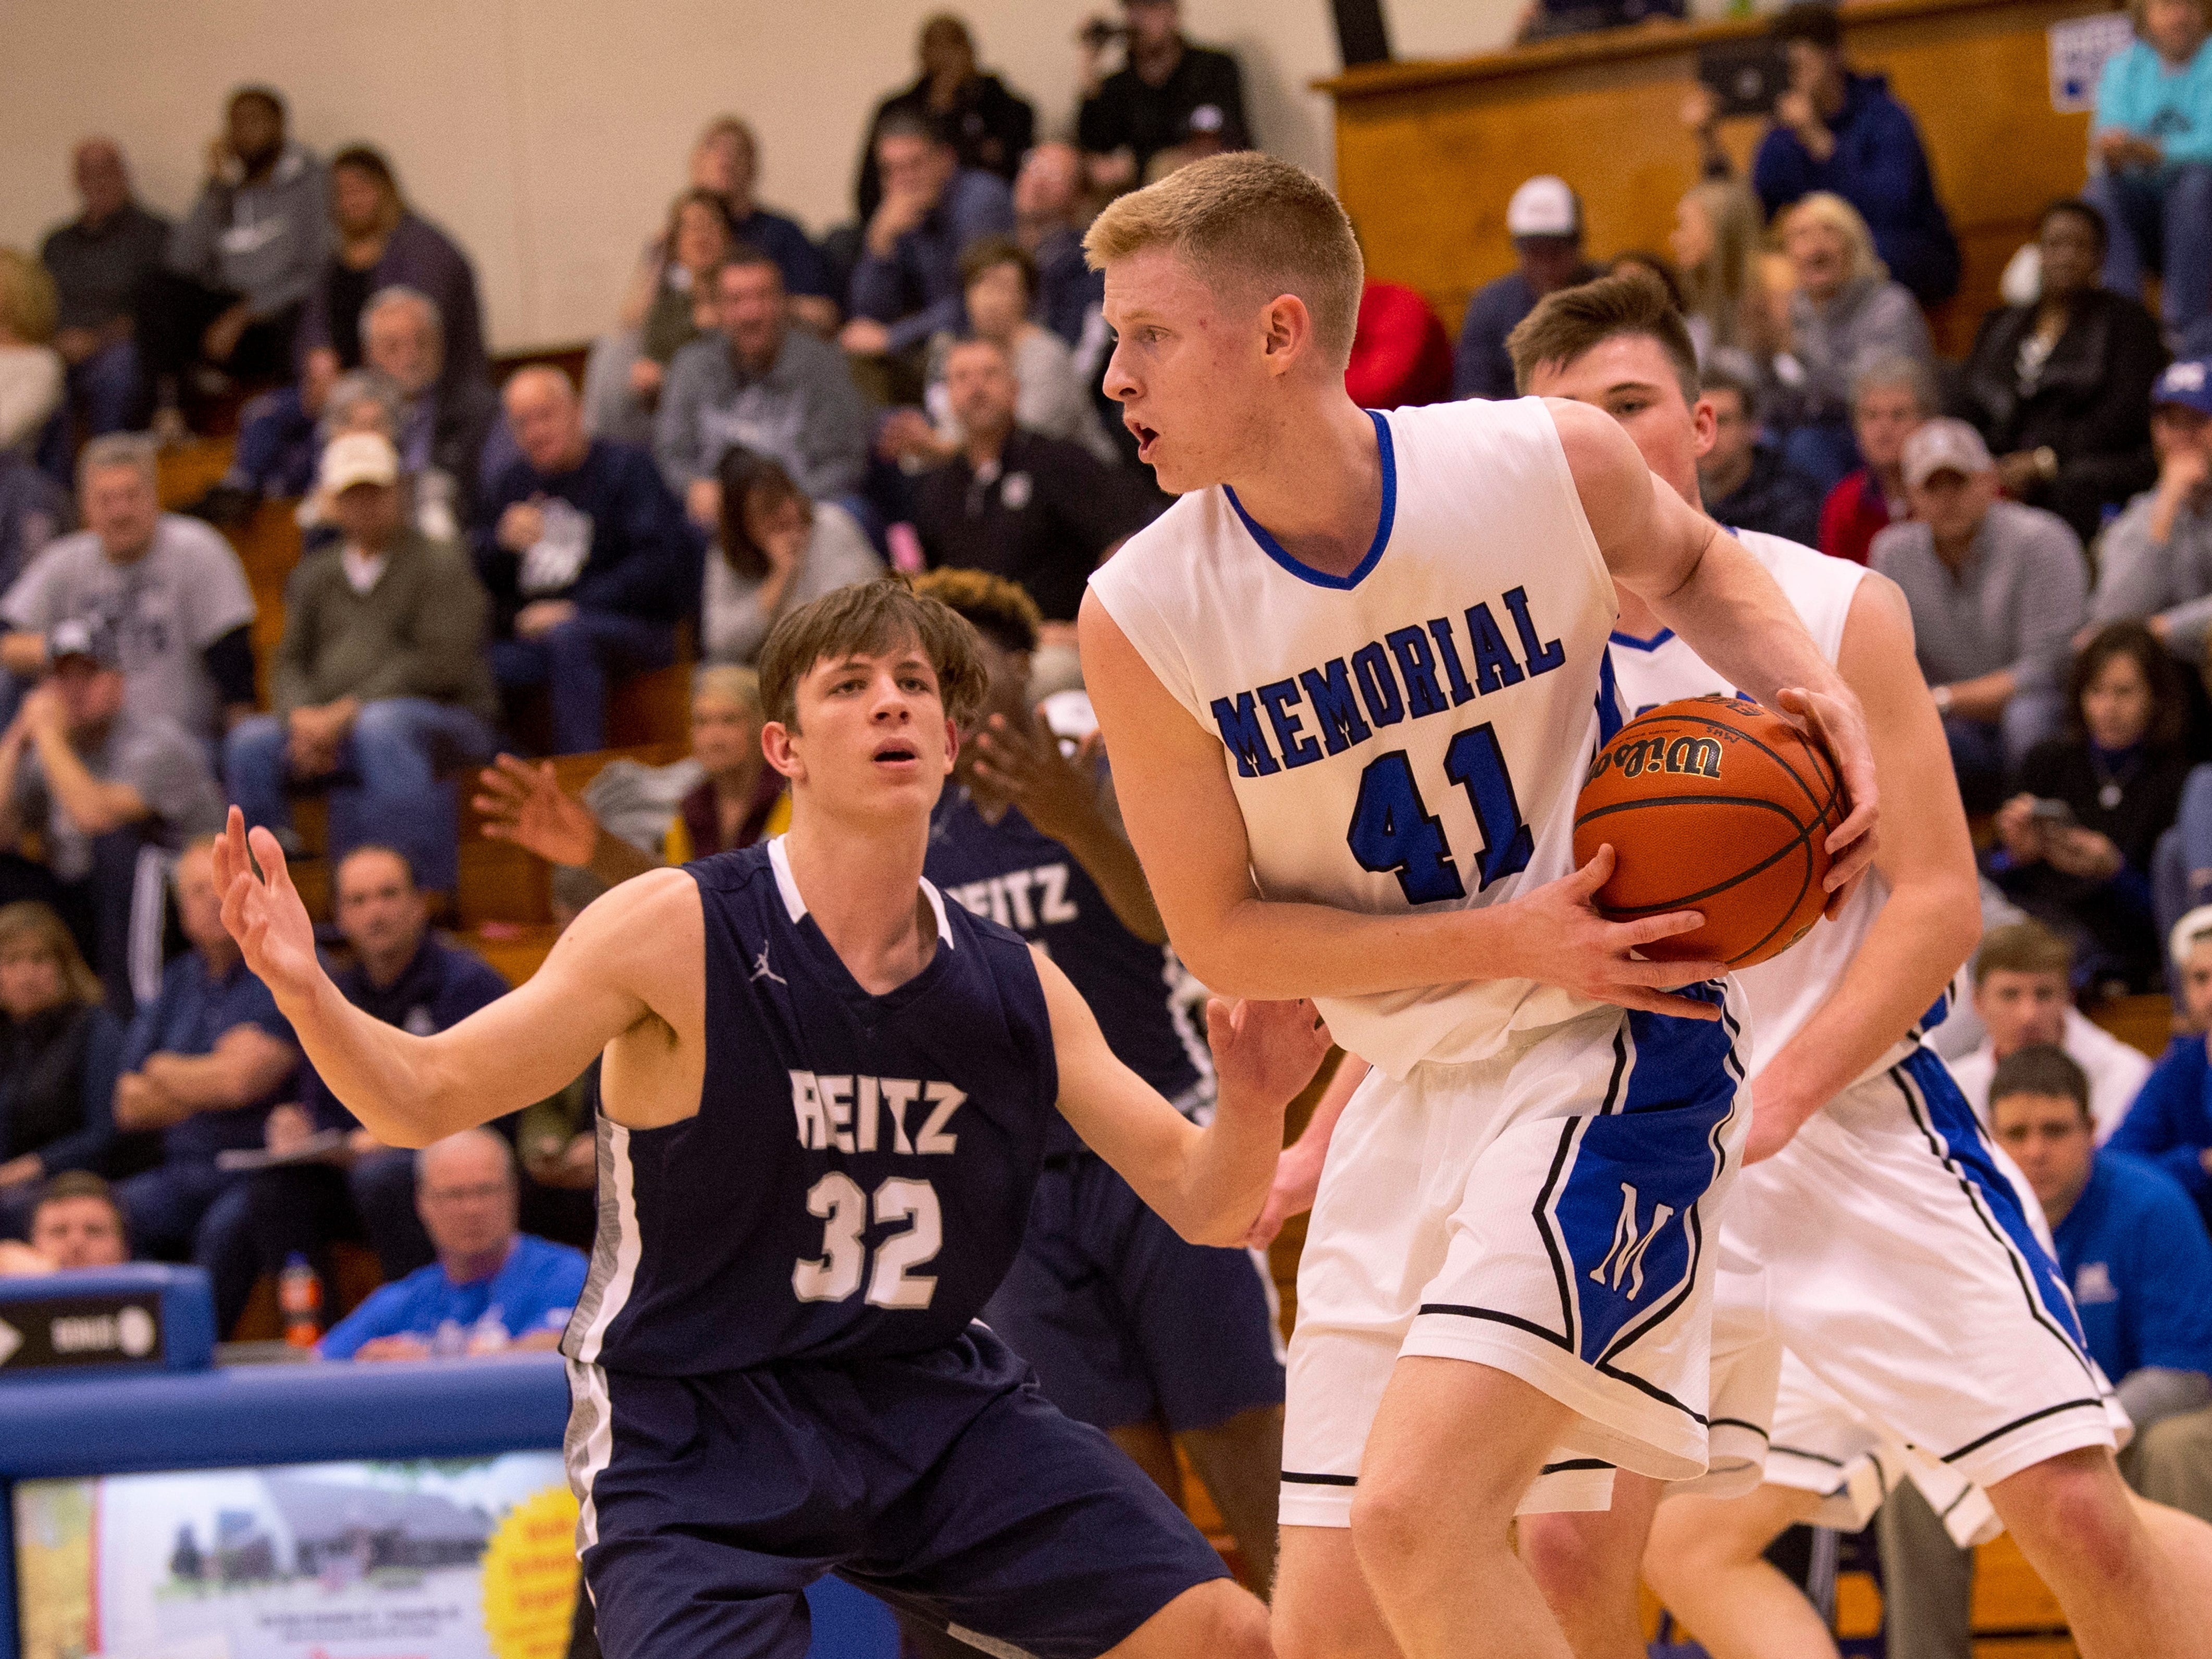 Reitz's Ethan Higgs (32) defends Memorial's Sam DeVault (41) in the first round of the SIAC Tournament at Memorial High School Tuesday night.